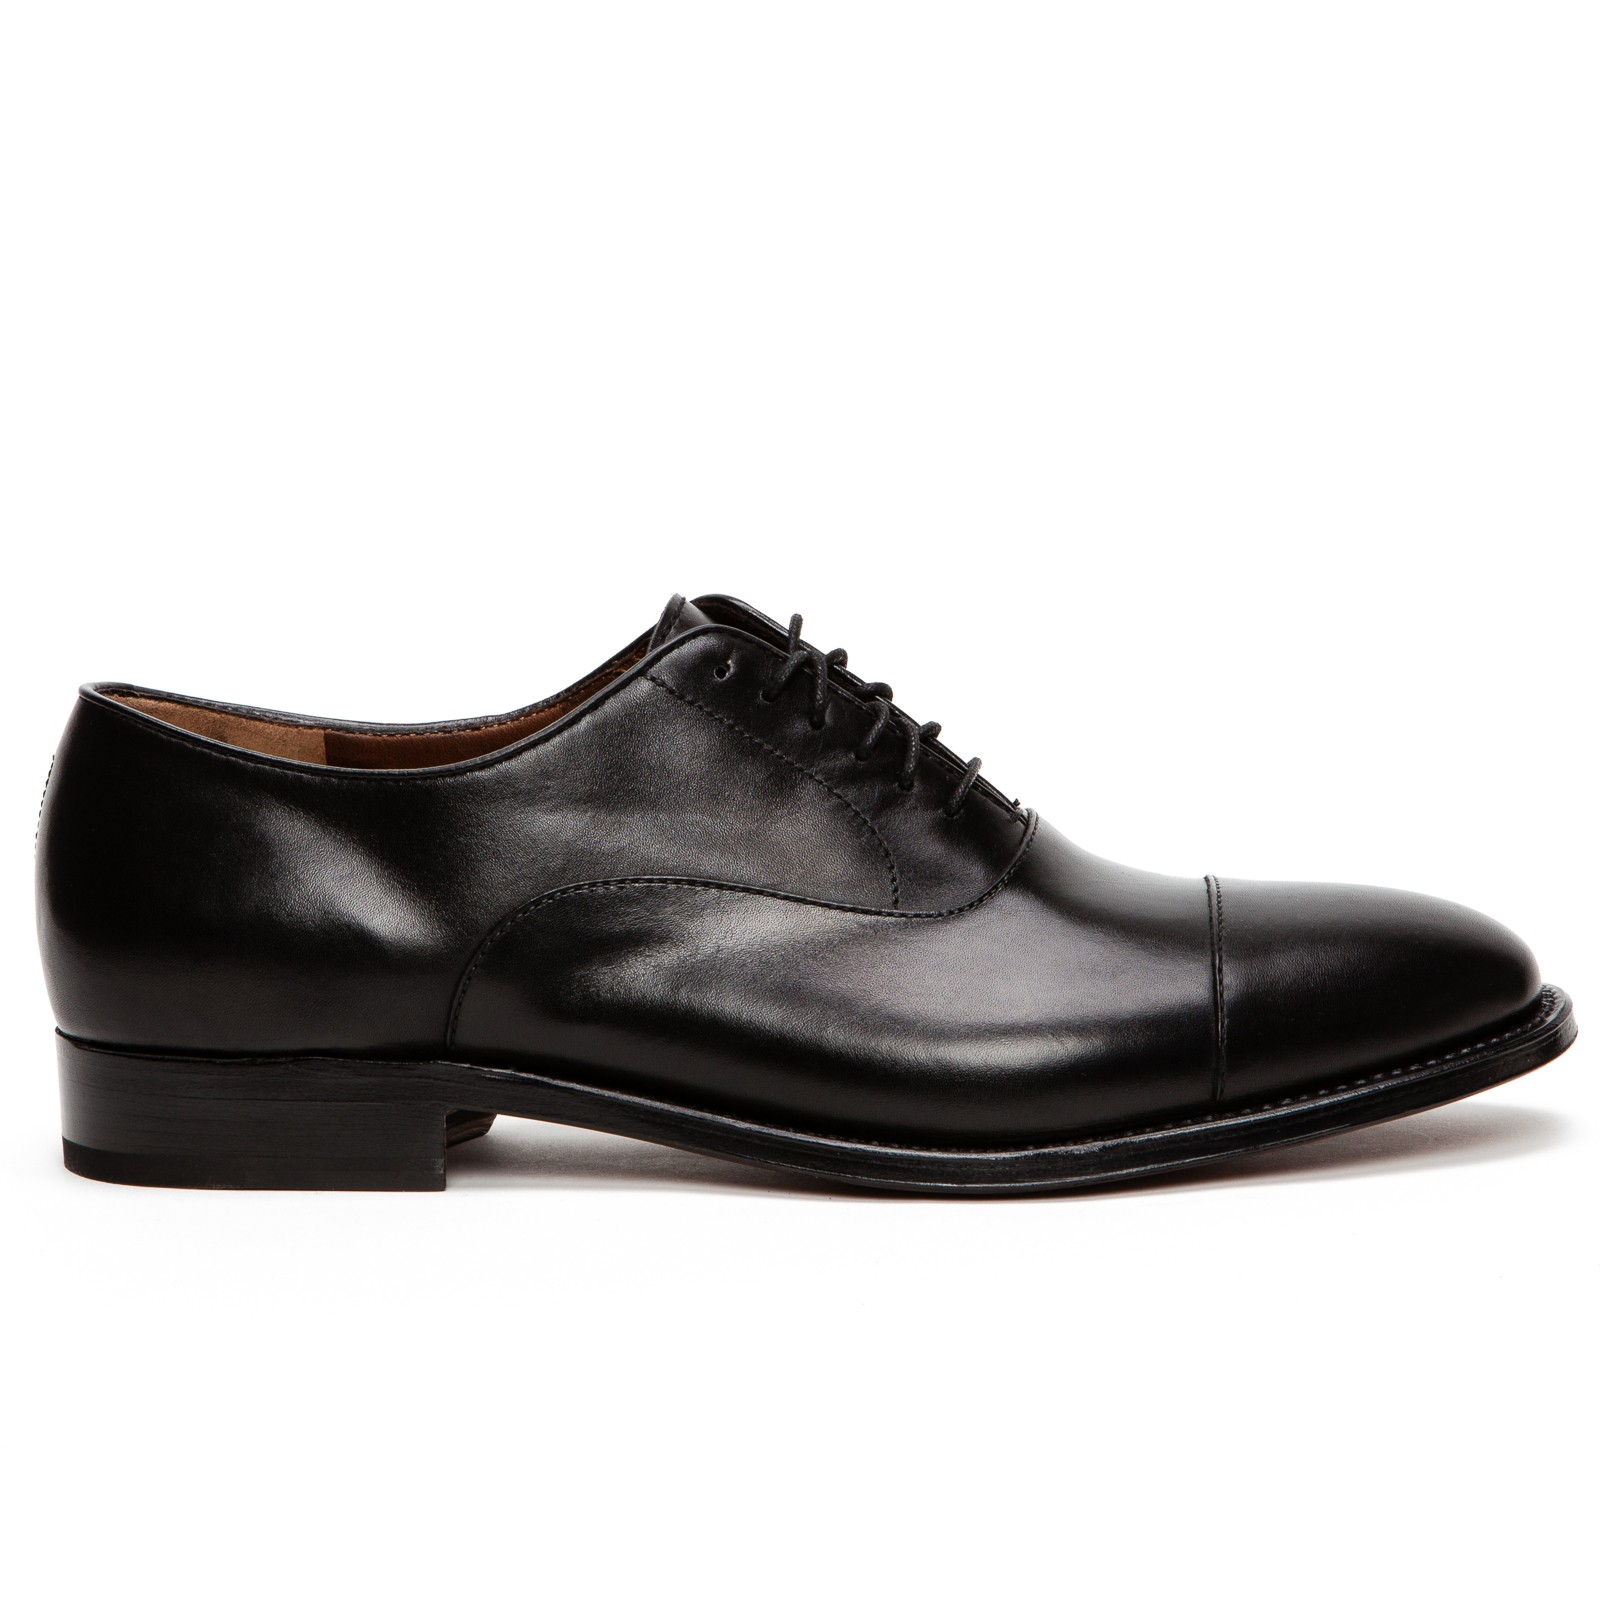 Aldo Mens Shoes Black Fashion Guide